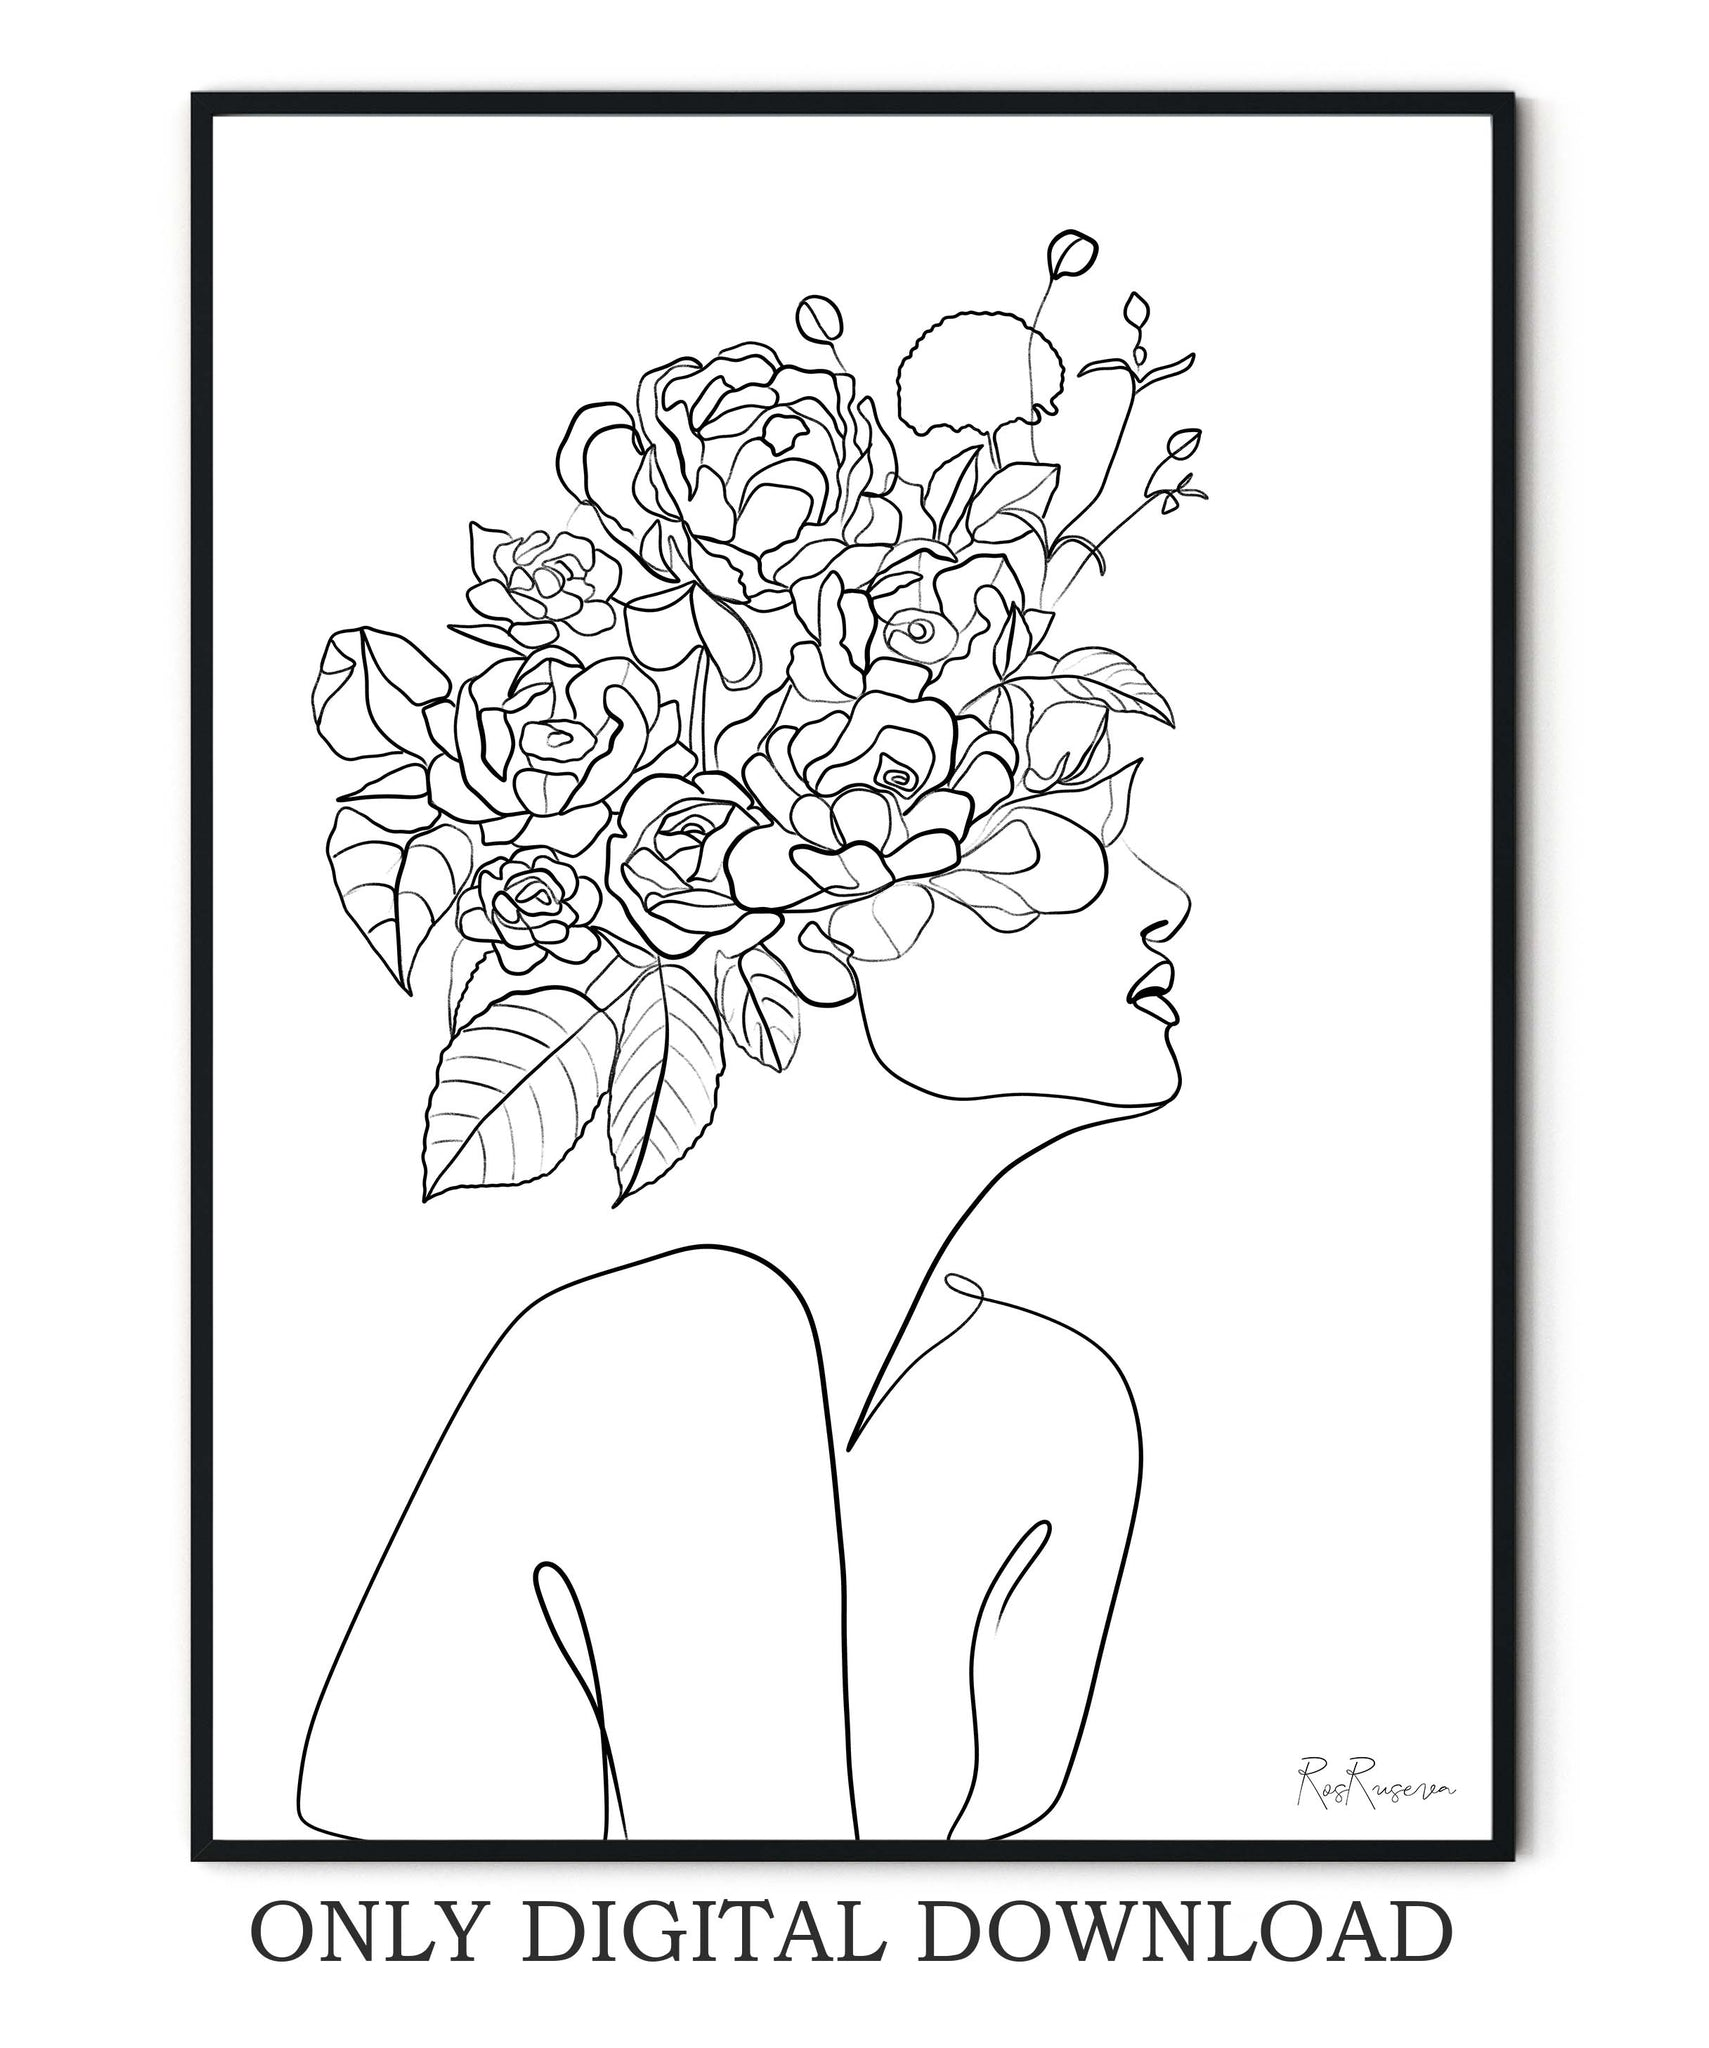 Head Of Flowers line art